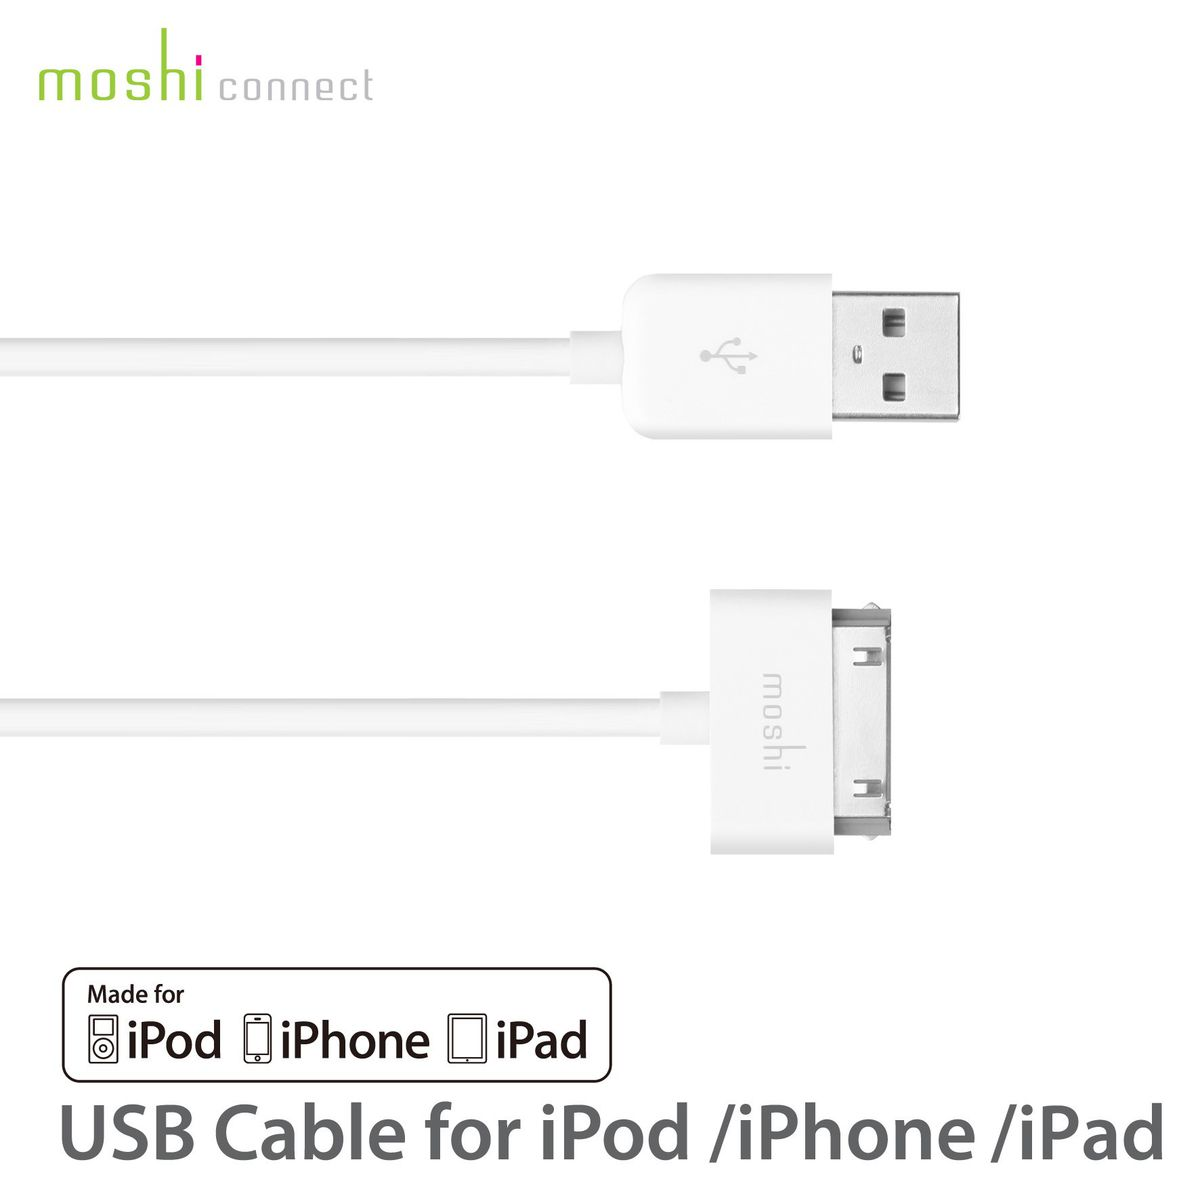 moshi usb cable ipod iphone ipad white buy online in south africa. Black Bedroom Furniture Sets. Home Design Ideas